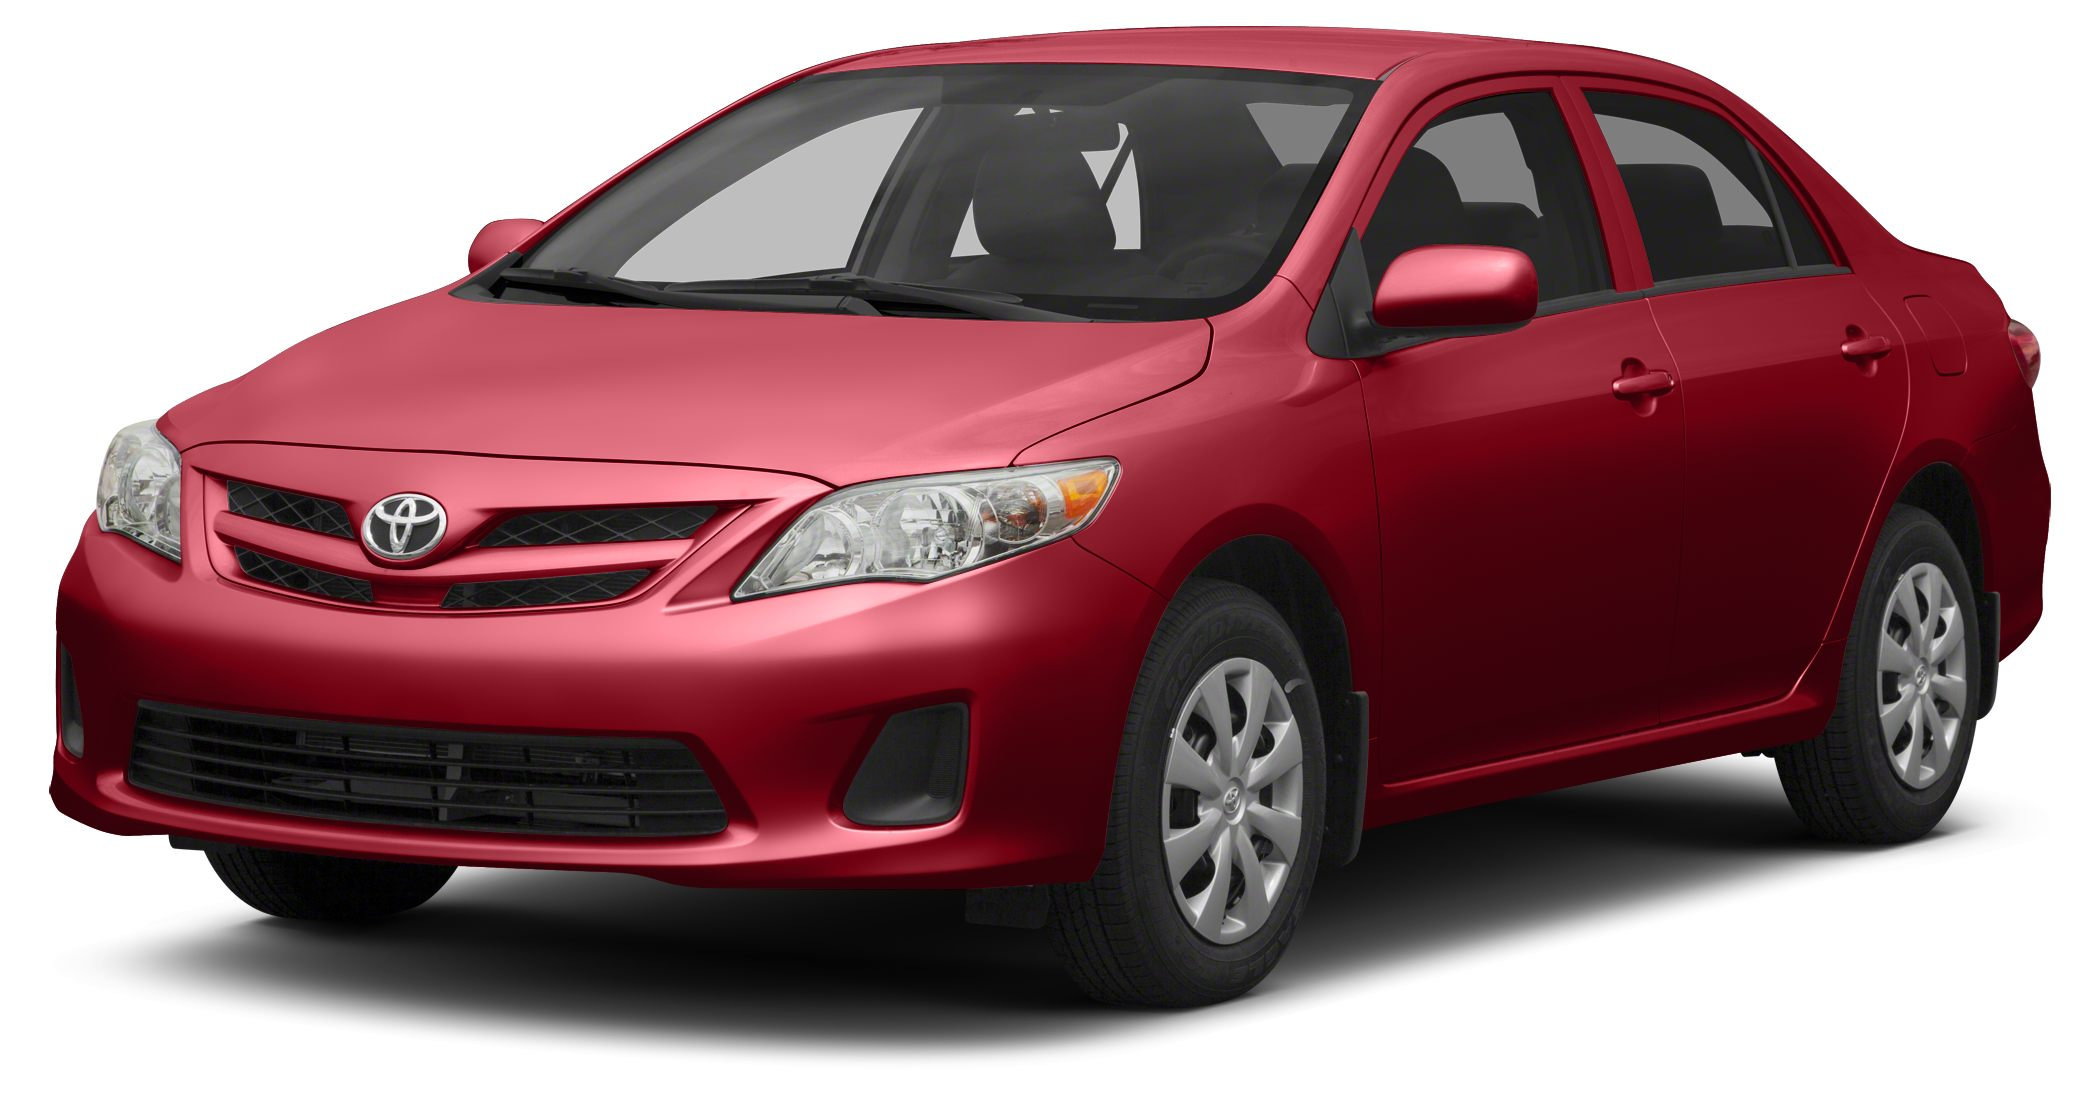 2011 Toyota Corolla LE PRICED TO MOVE 200 below Kelley Blue Book FUEL EFFICIENT 34 MPG Hwy26 M